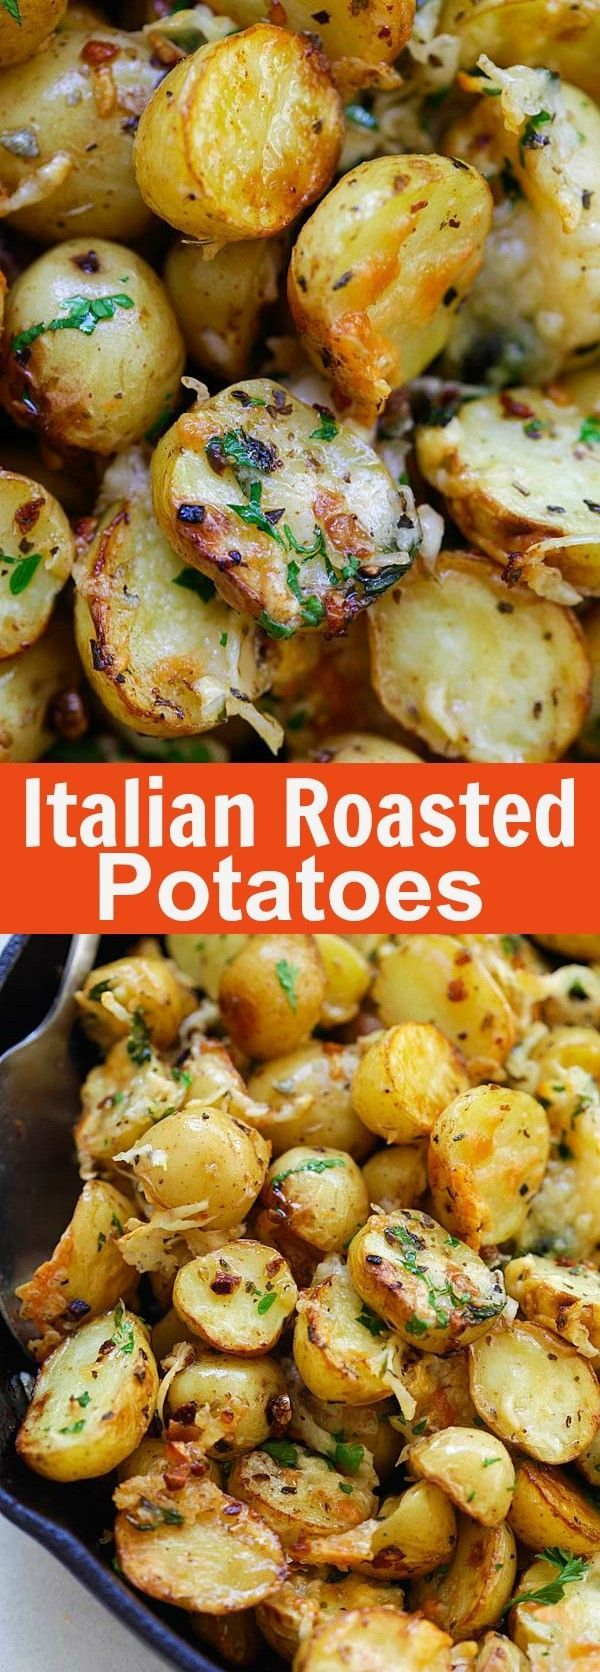 Get he recipe Italian Roasted Potatoes @recipes_to_go